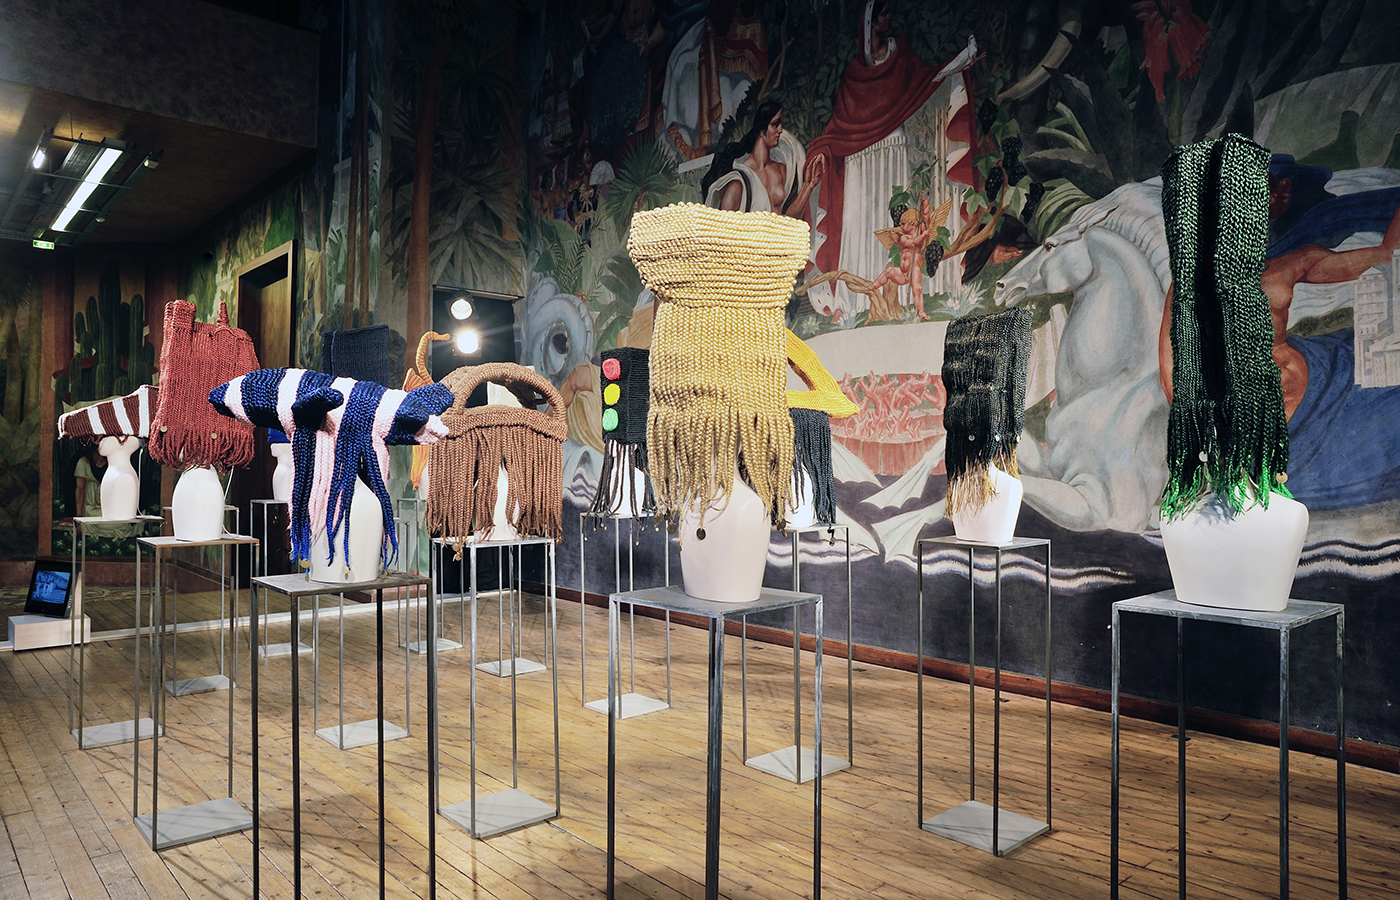 Meschac Gaba - Exhibition view - Meschac Gaba, Musee National de l Histoire de l immigration, Paris, France, till 19/09/15